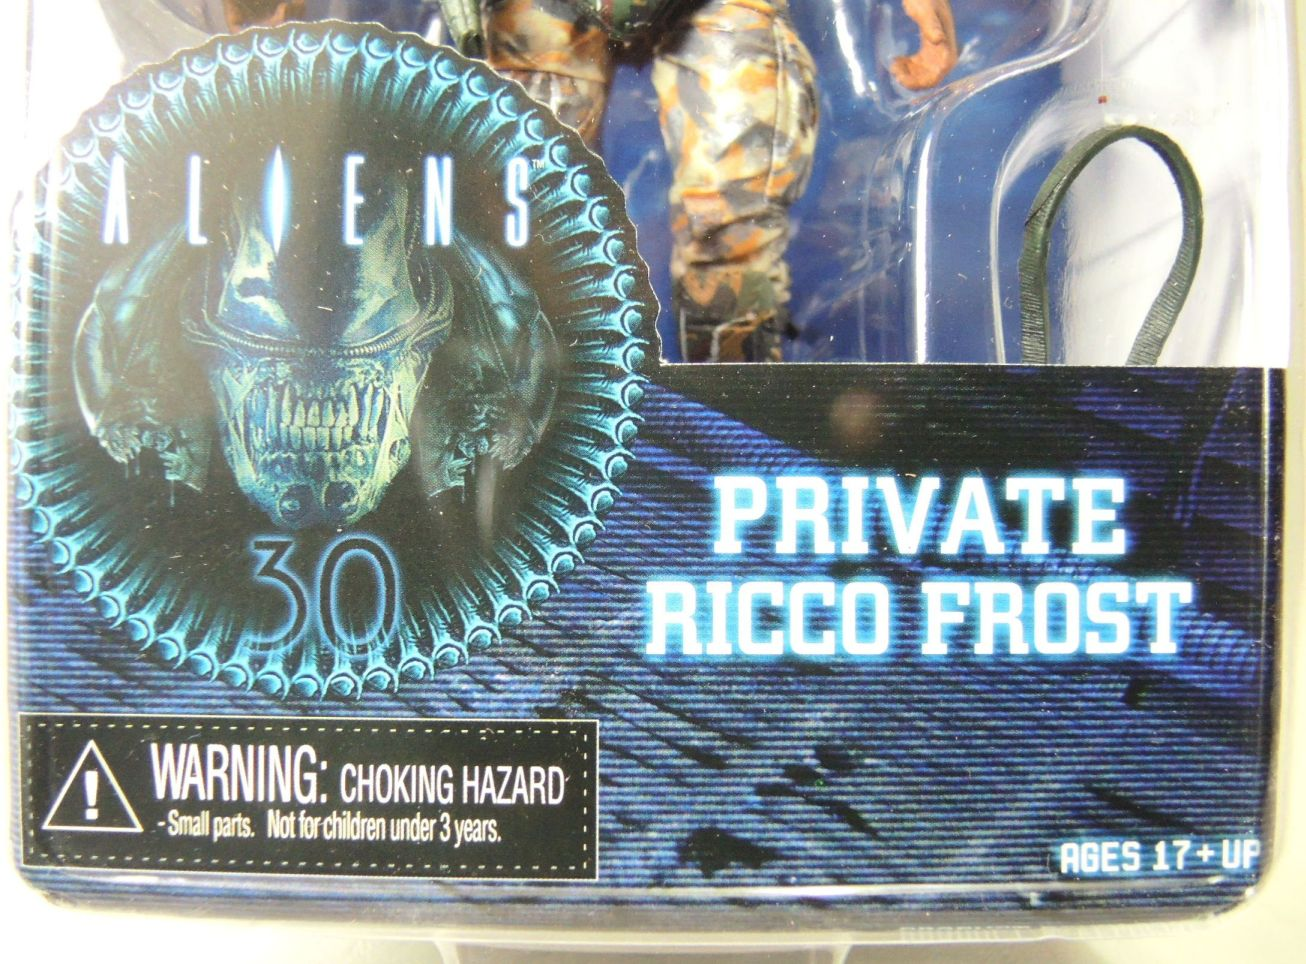 NECA Aliens Series 9 Action Figure - Private Rico Frost - 9883-9833CCVTYC